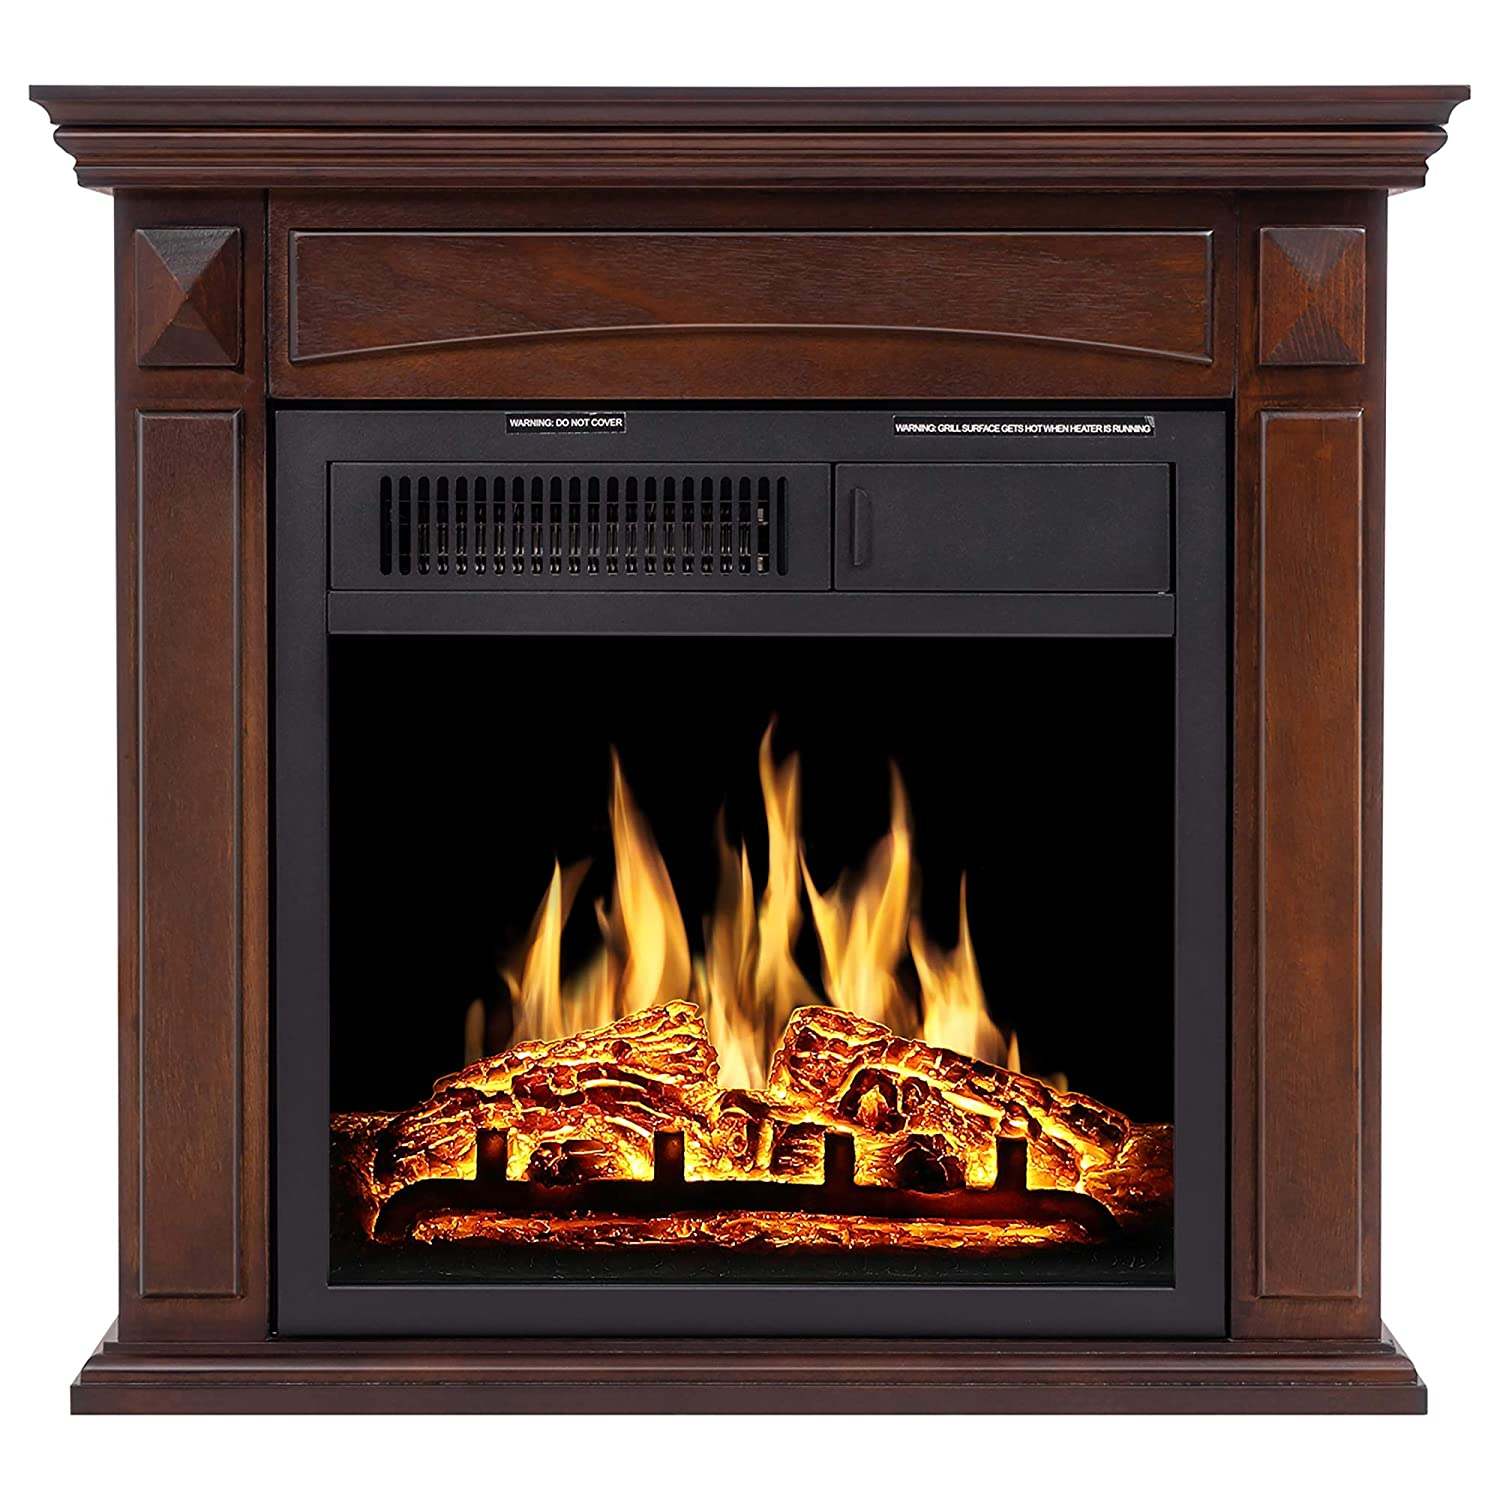 JAMFLY Electric Fireplace Mantel Package Wood Surround Firebox Freestanding Corner Fireplace Infrared Quartz Heater Adjustable Led Flame, w/Logs, Remote Control, 750W-1500W, Brown